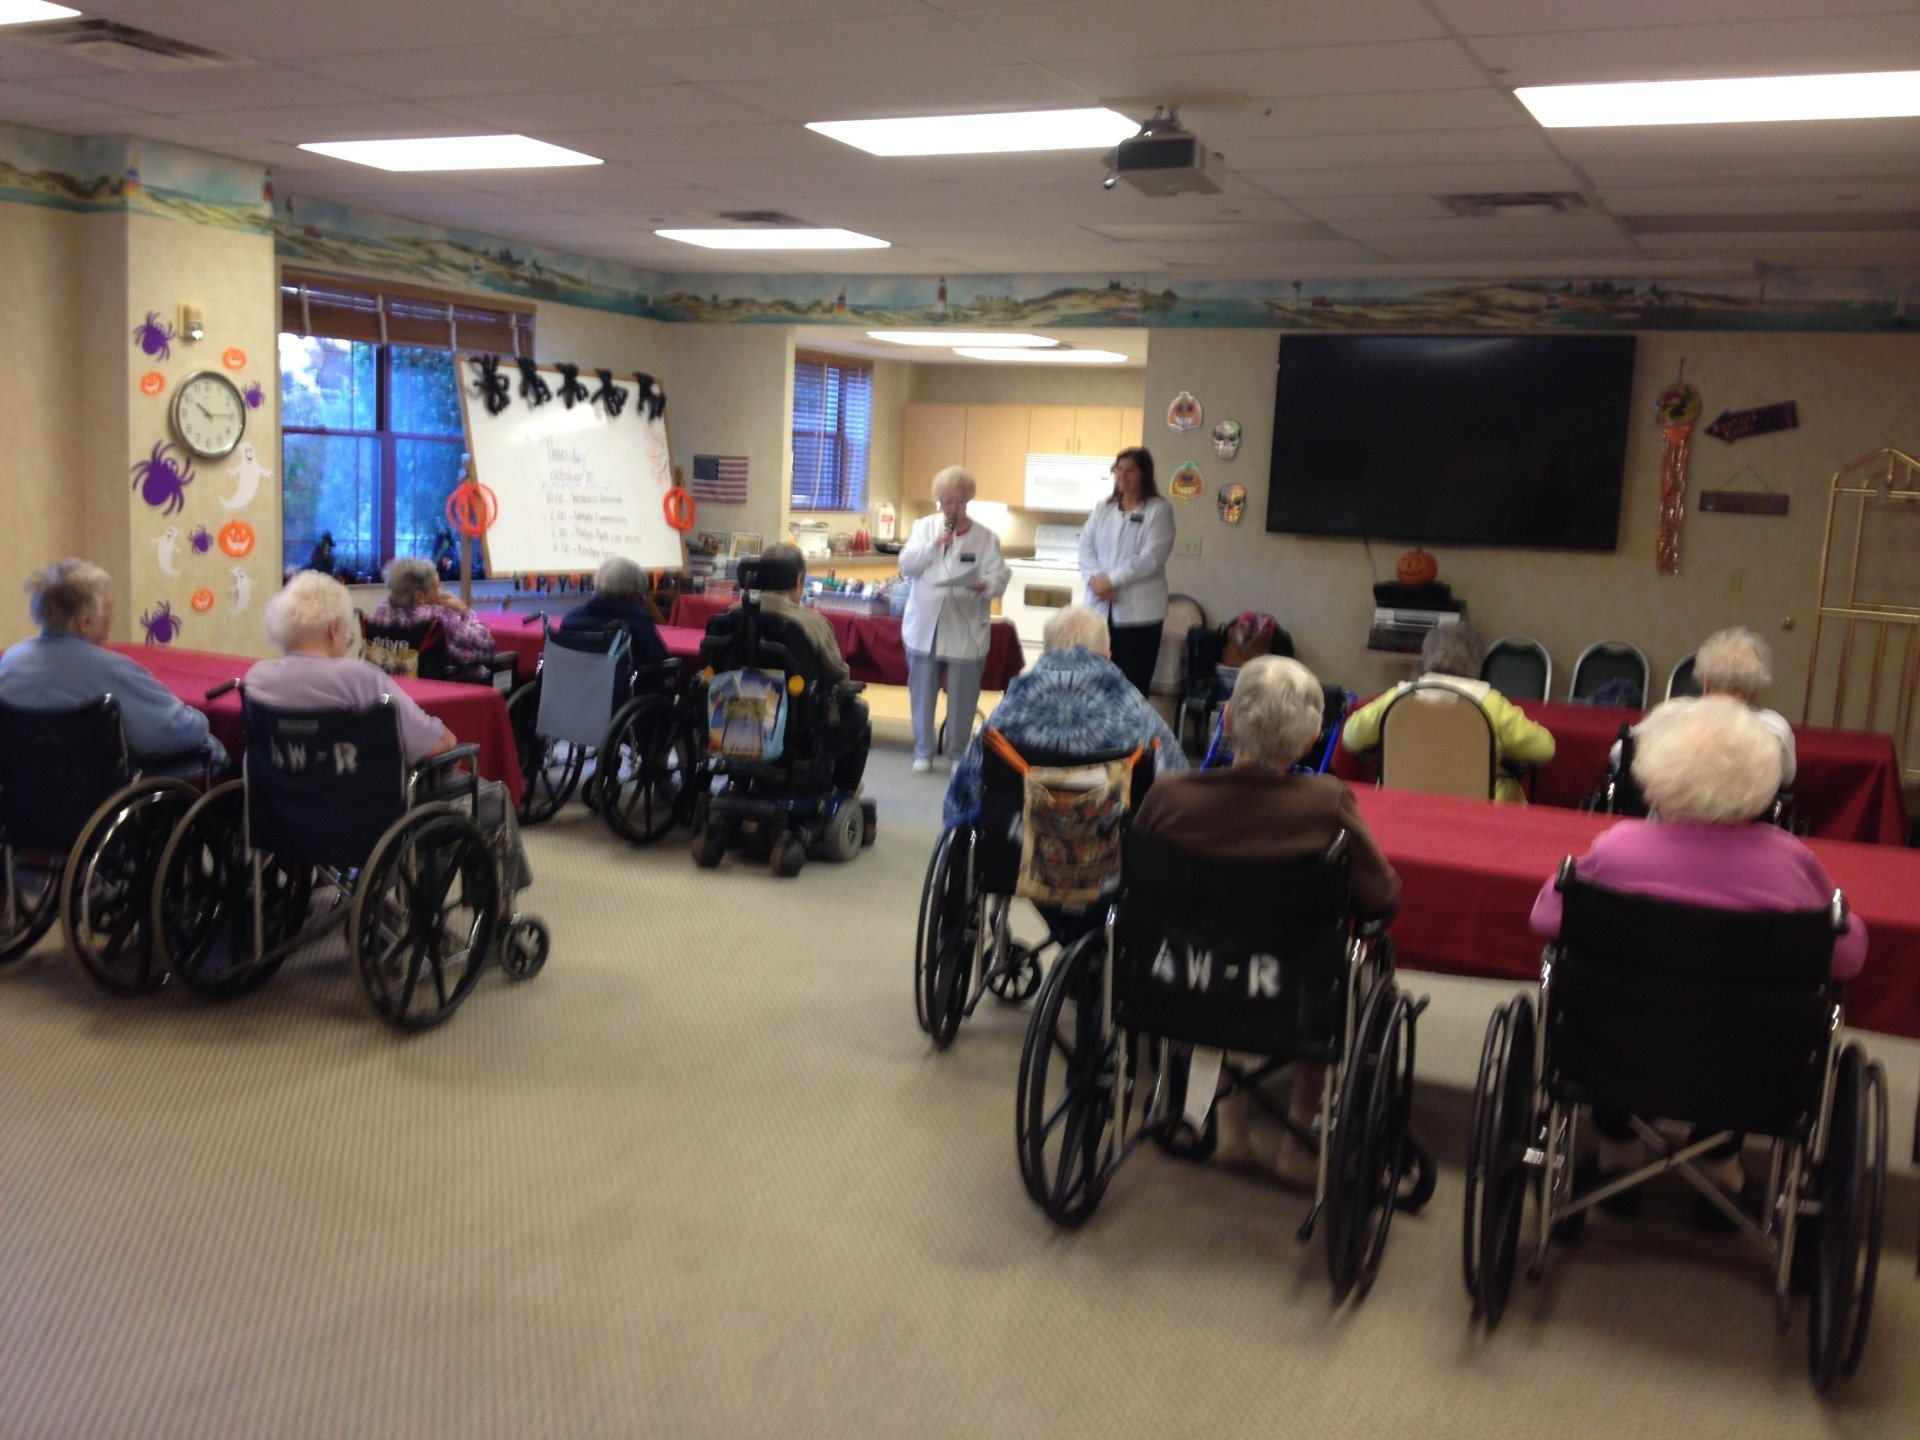 Fran, Megan, & Amy presented to residents of Alden